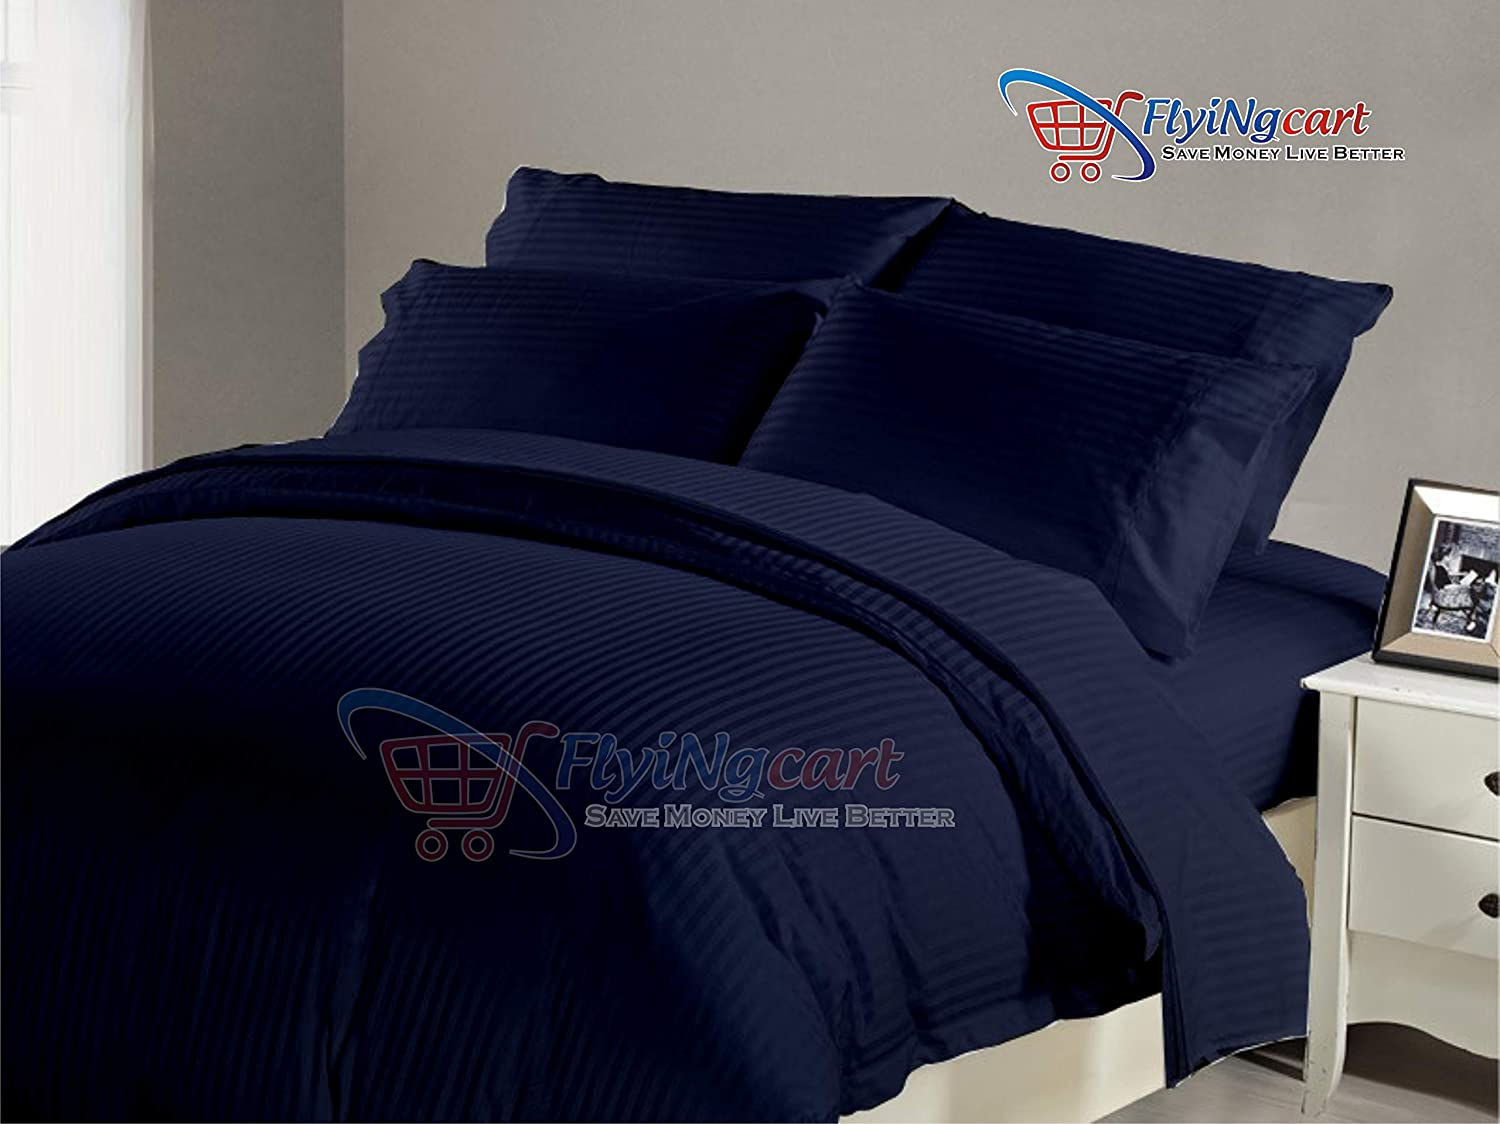 Flying Cart 1000-TC Hypoallergenic Ultra Soft Design 100% Egyptian Cotton 94x104 inch King/Cal-King Size Navy Blue Striped Duvet Cover with Zipper Closure & 2pcs Pillow Case Set